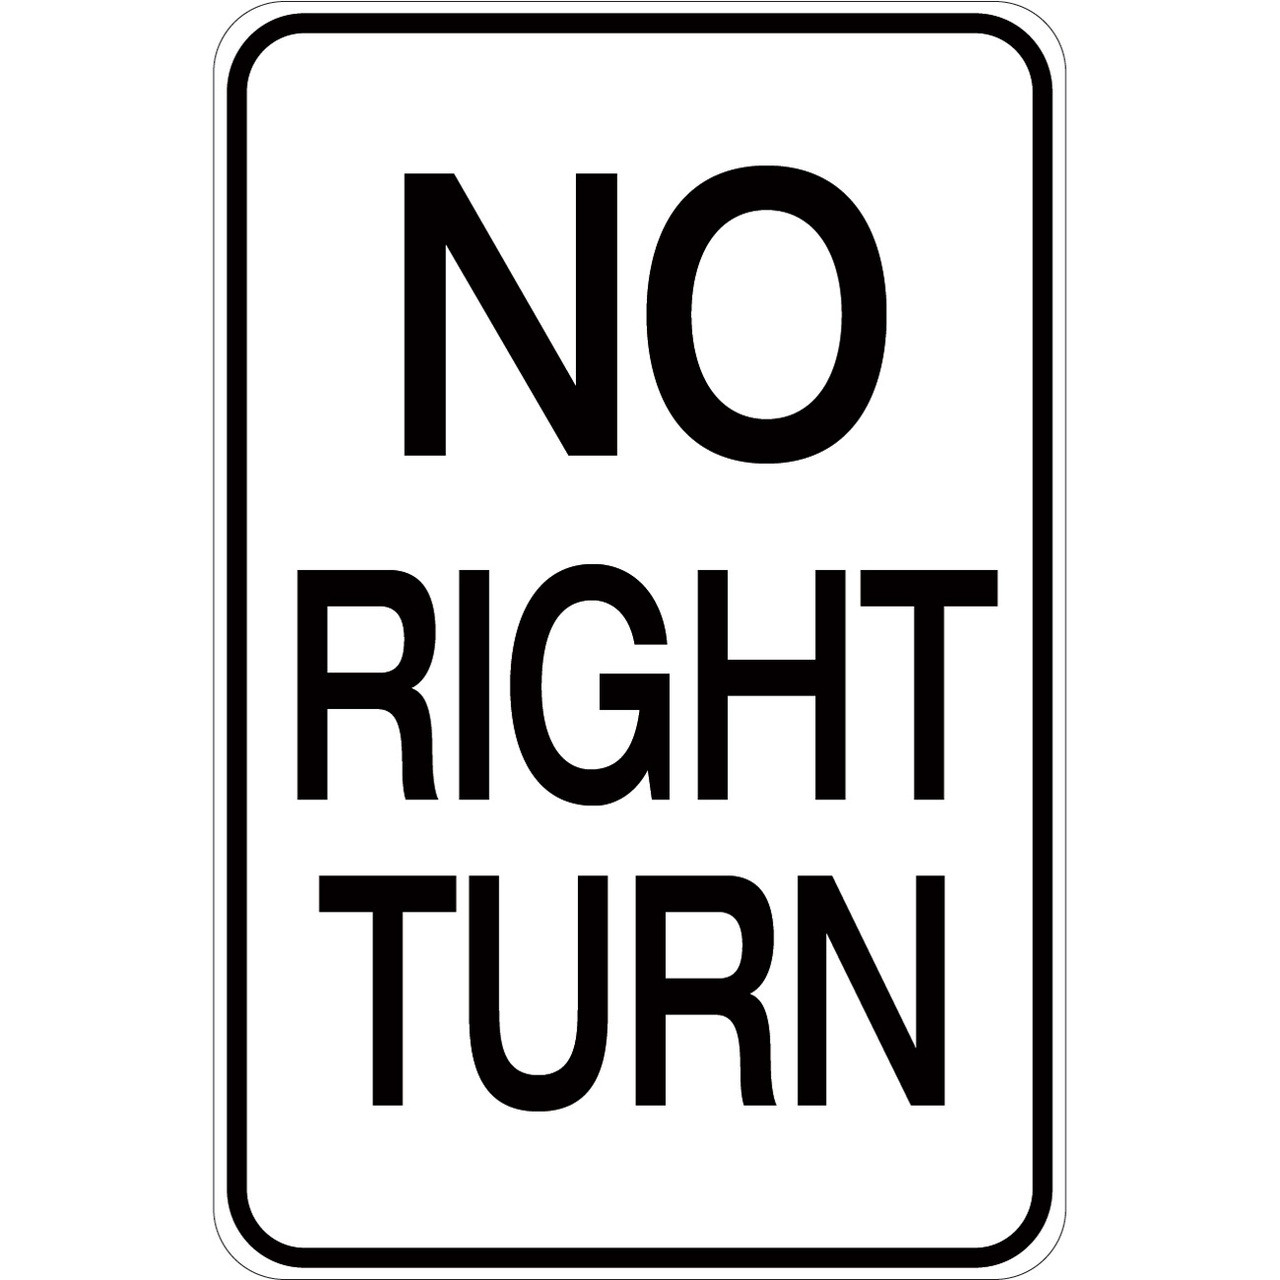 No Right Turn Aluminum Sign Creative Safety Supply